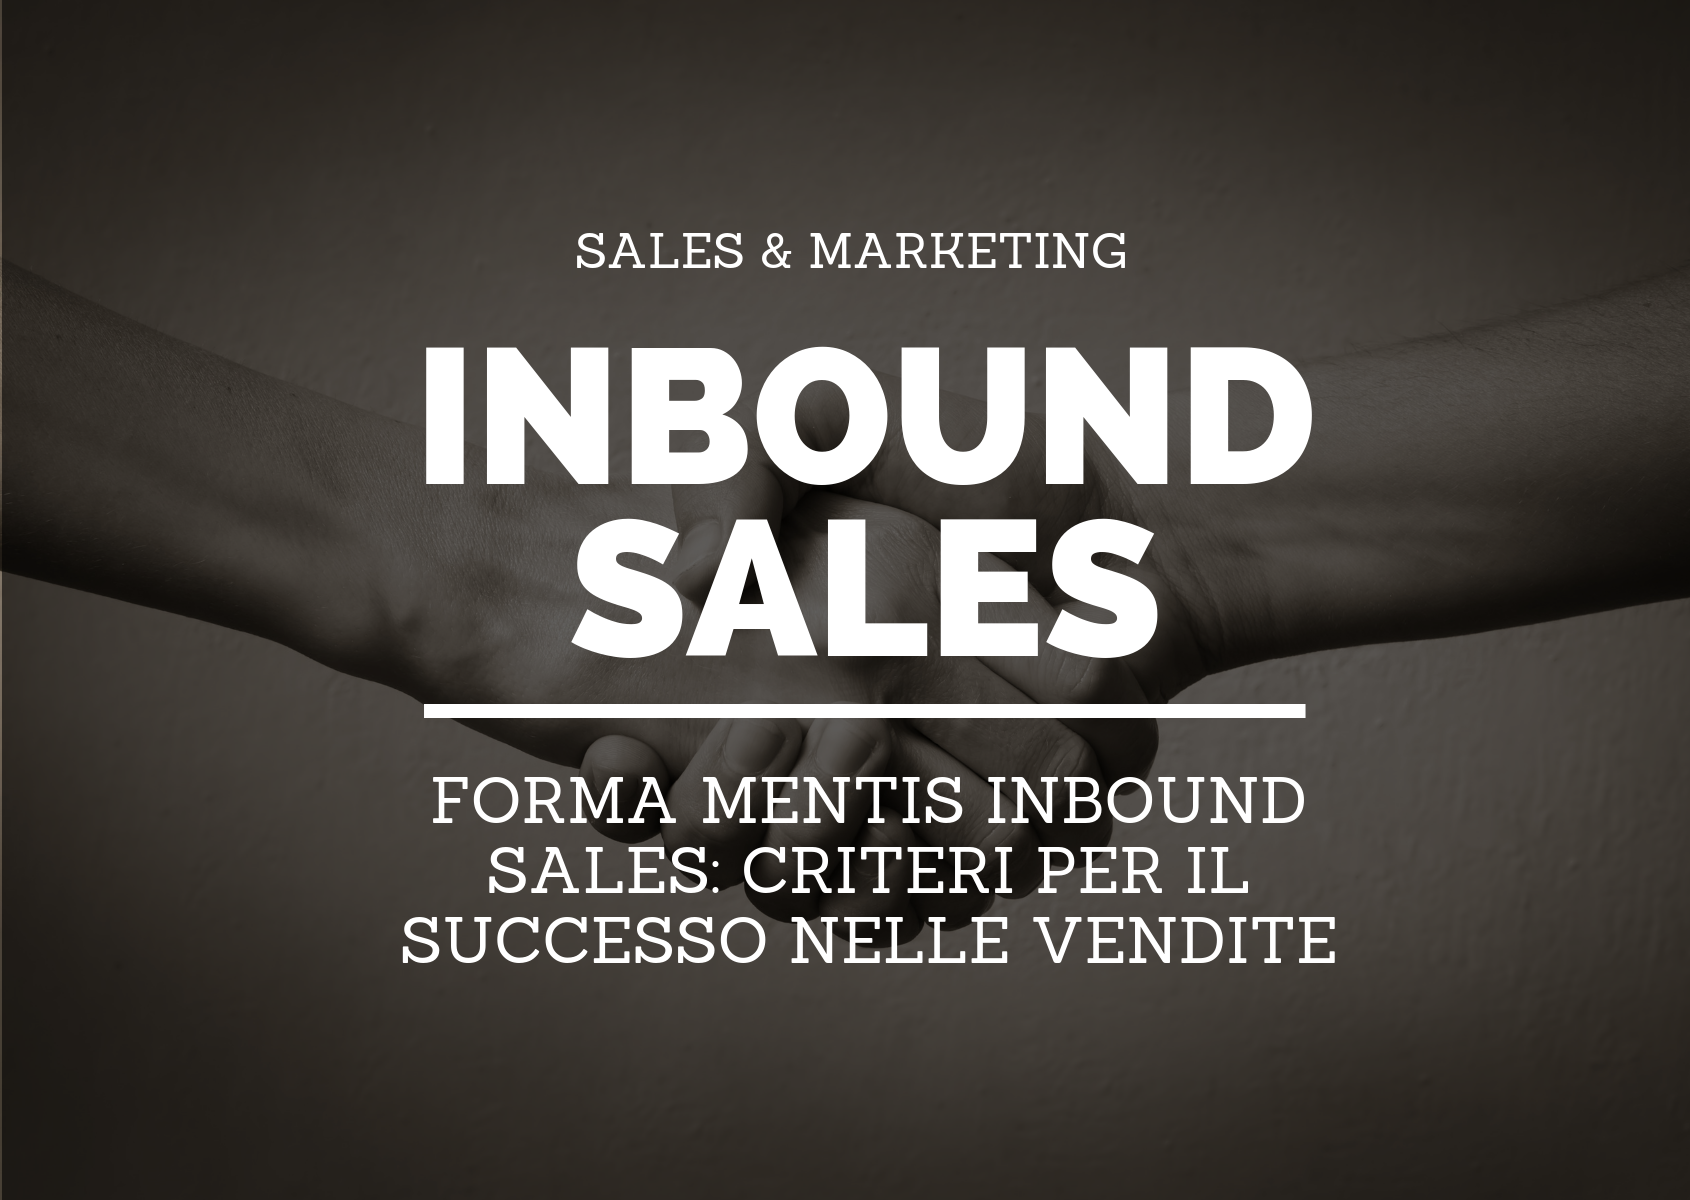 INBOUND SALES MARKETING